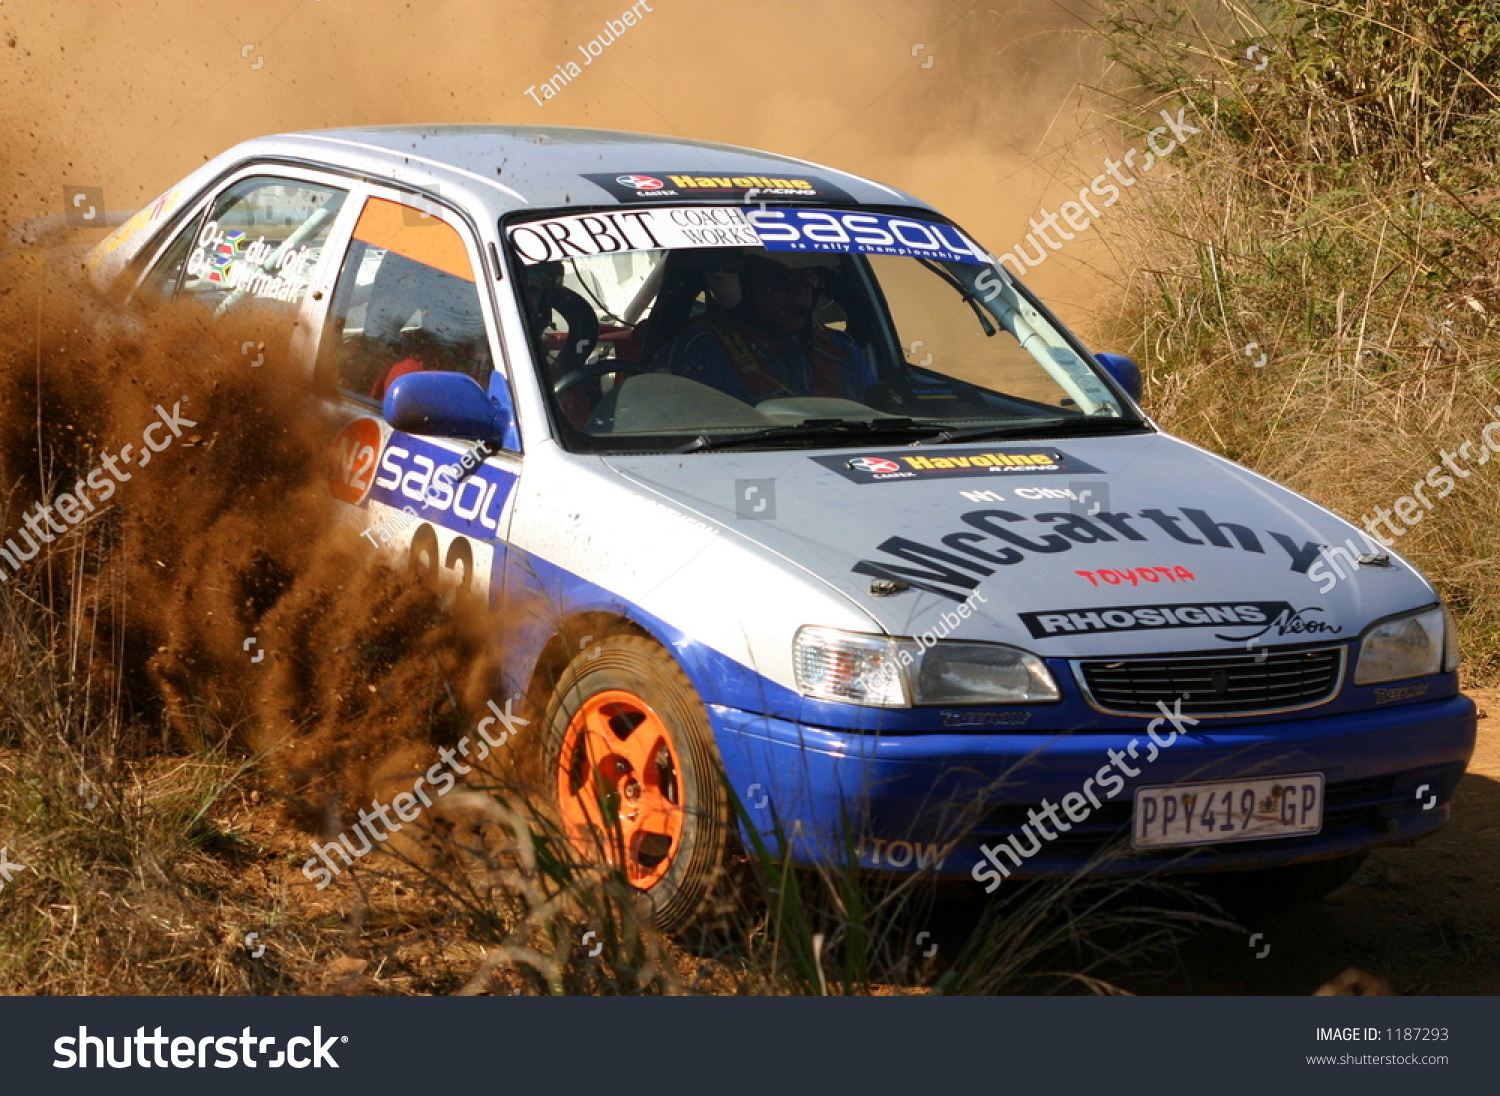 Toyota Corolla Rally Car Stock Photo 1187293 - Shutterstock